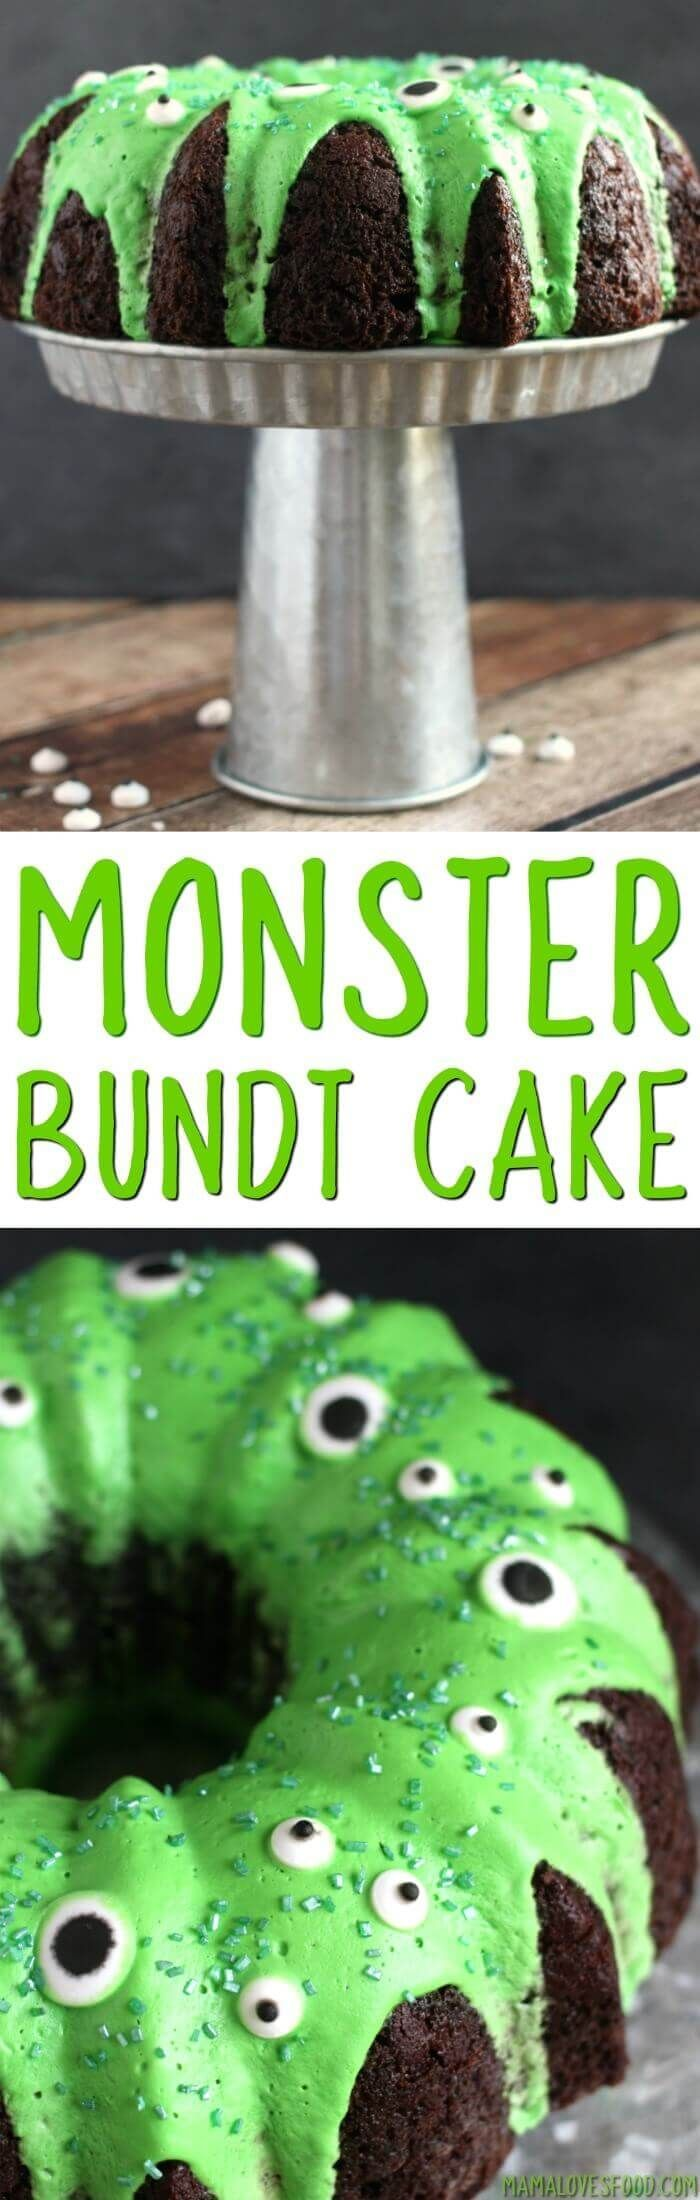 so fun, the kids loved it!  great tips on how to make box cake better too!   Easy Monster Bundt Cake